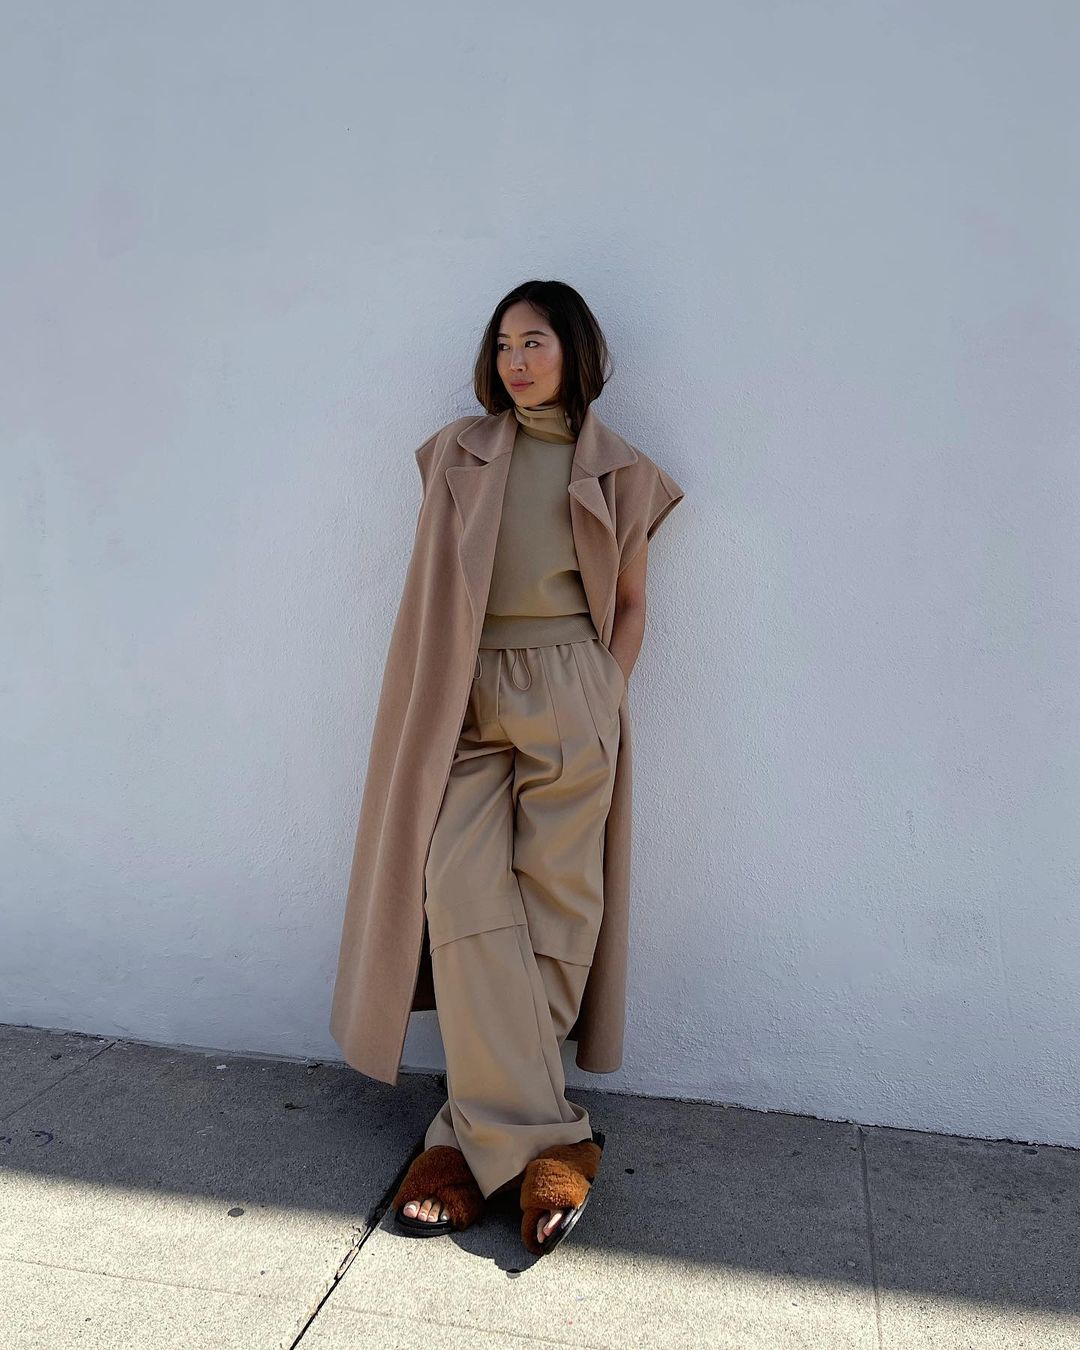 song-of-style-alex-slide-camel-aimee-song-instagram